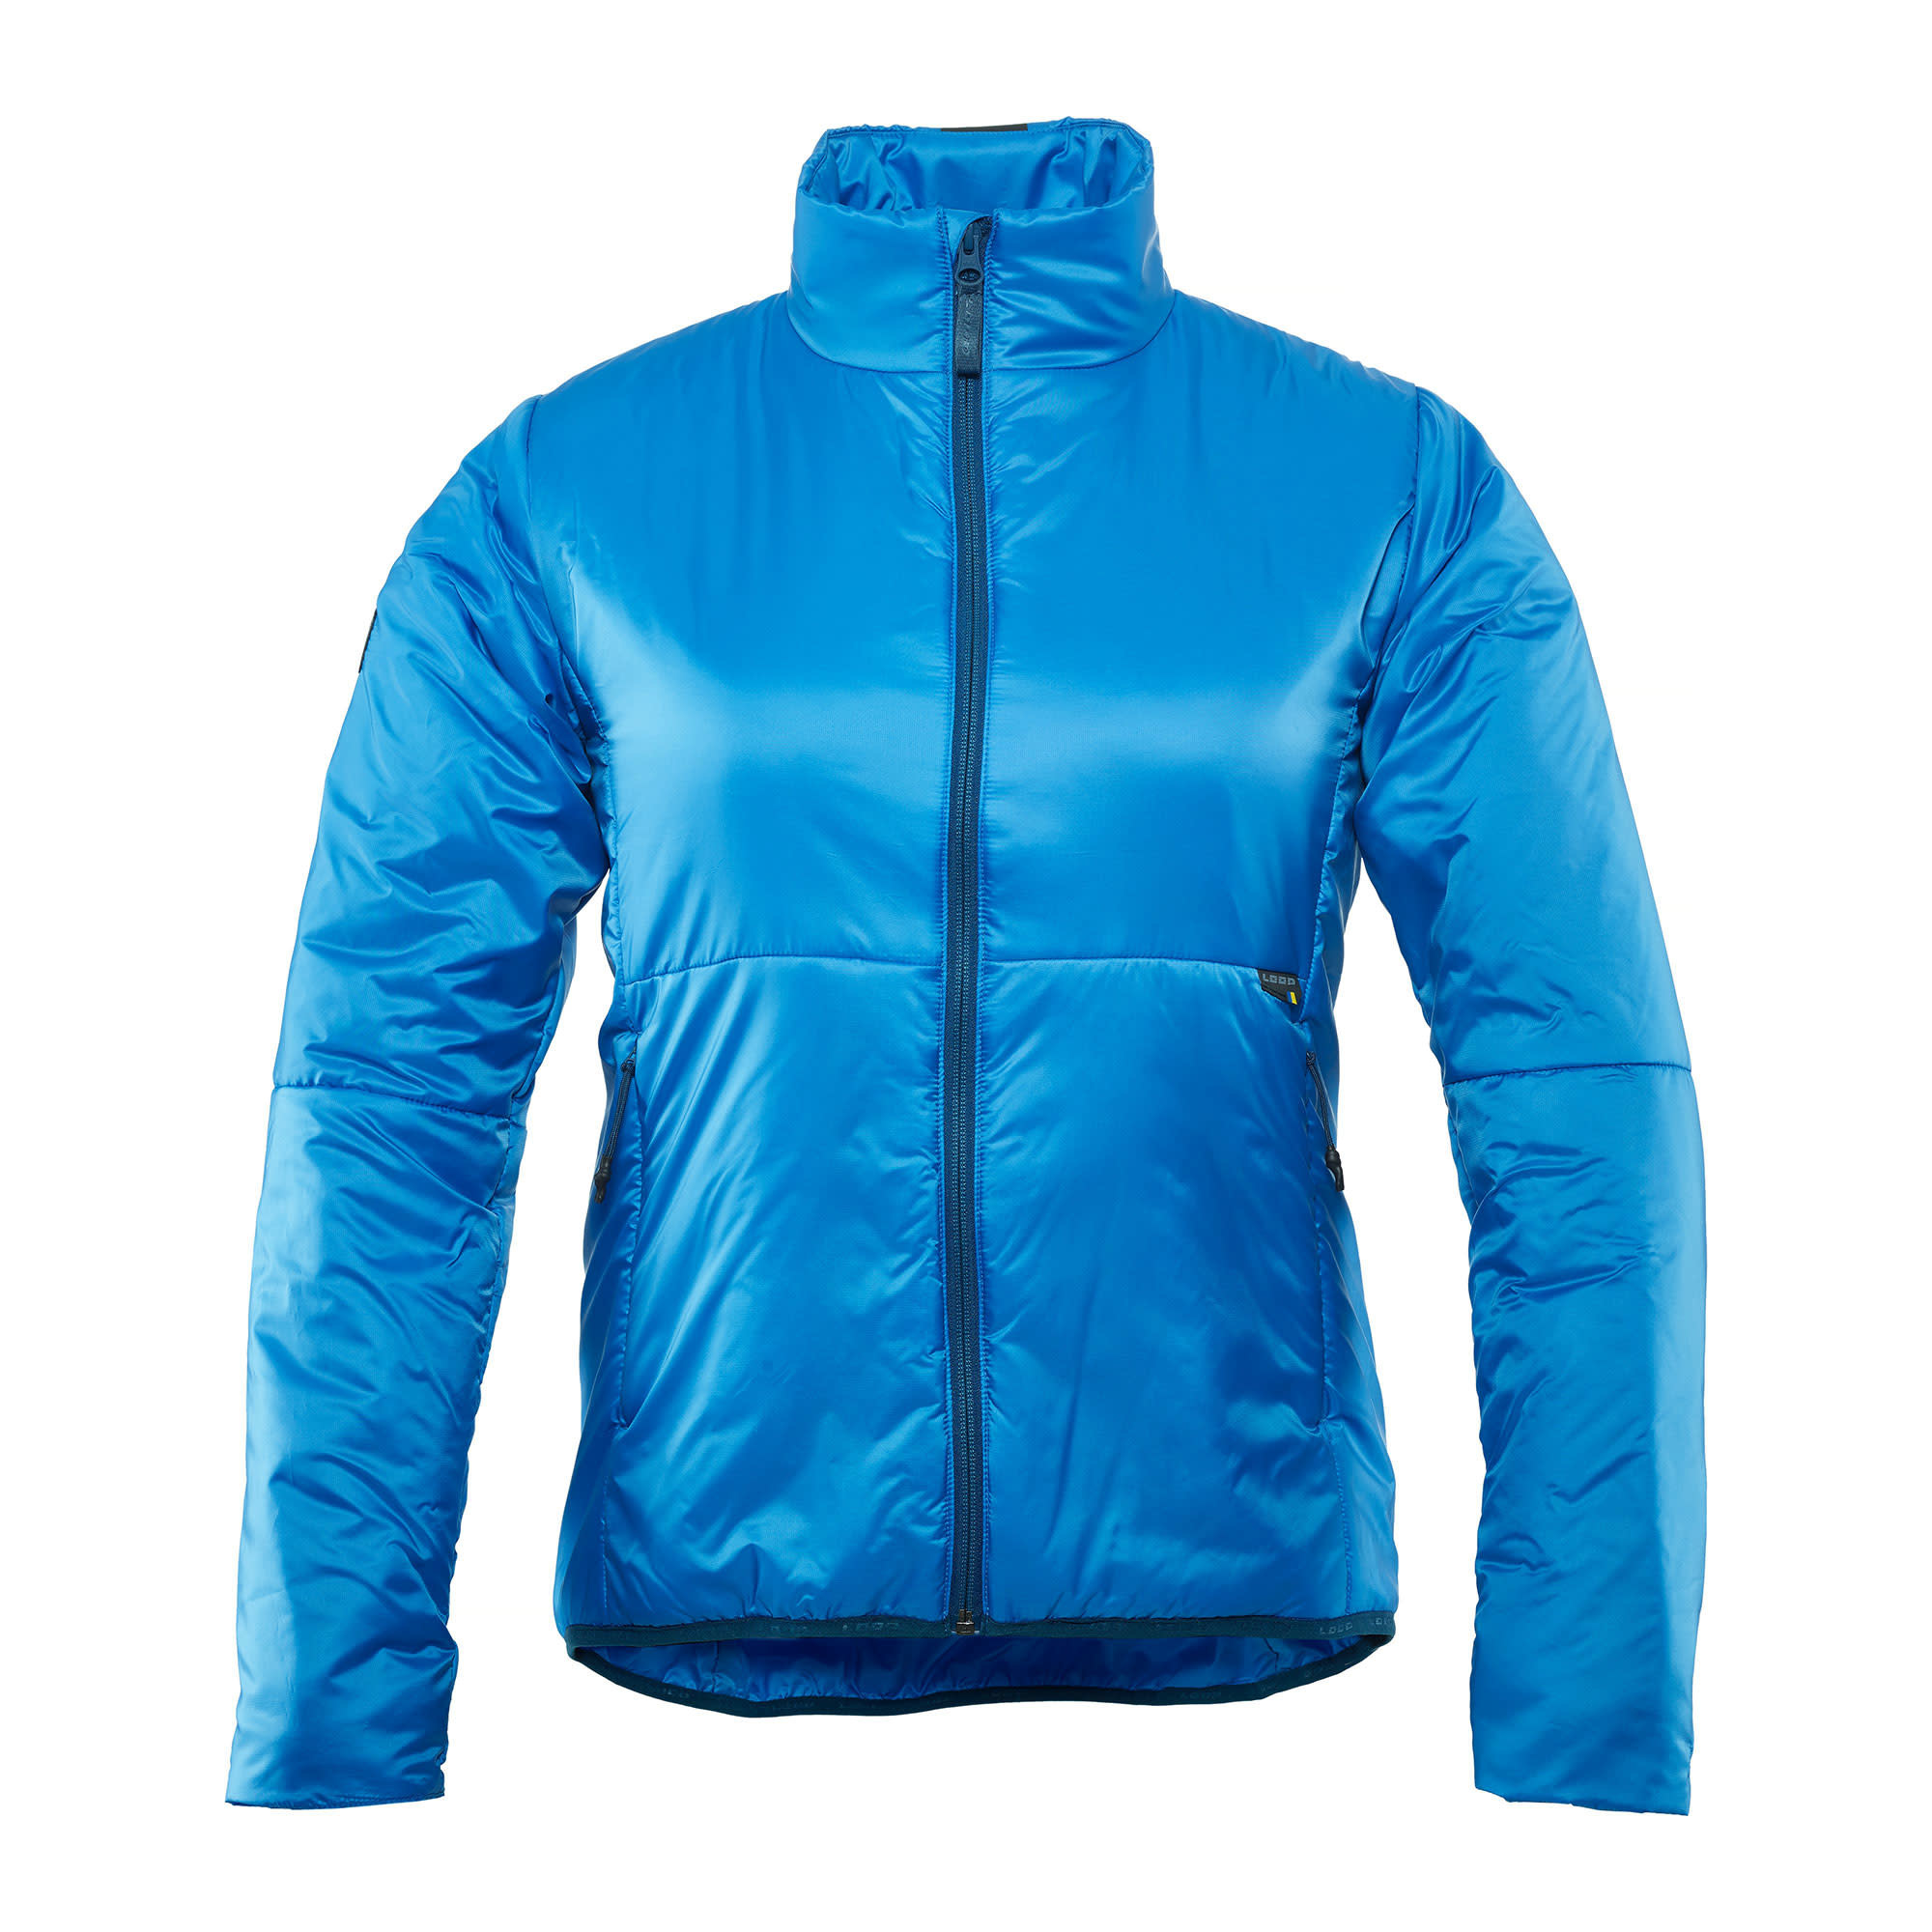 Women's Leipik Jacket